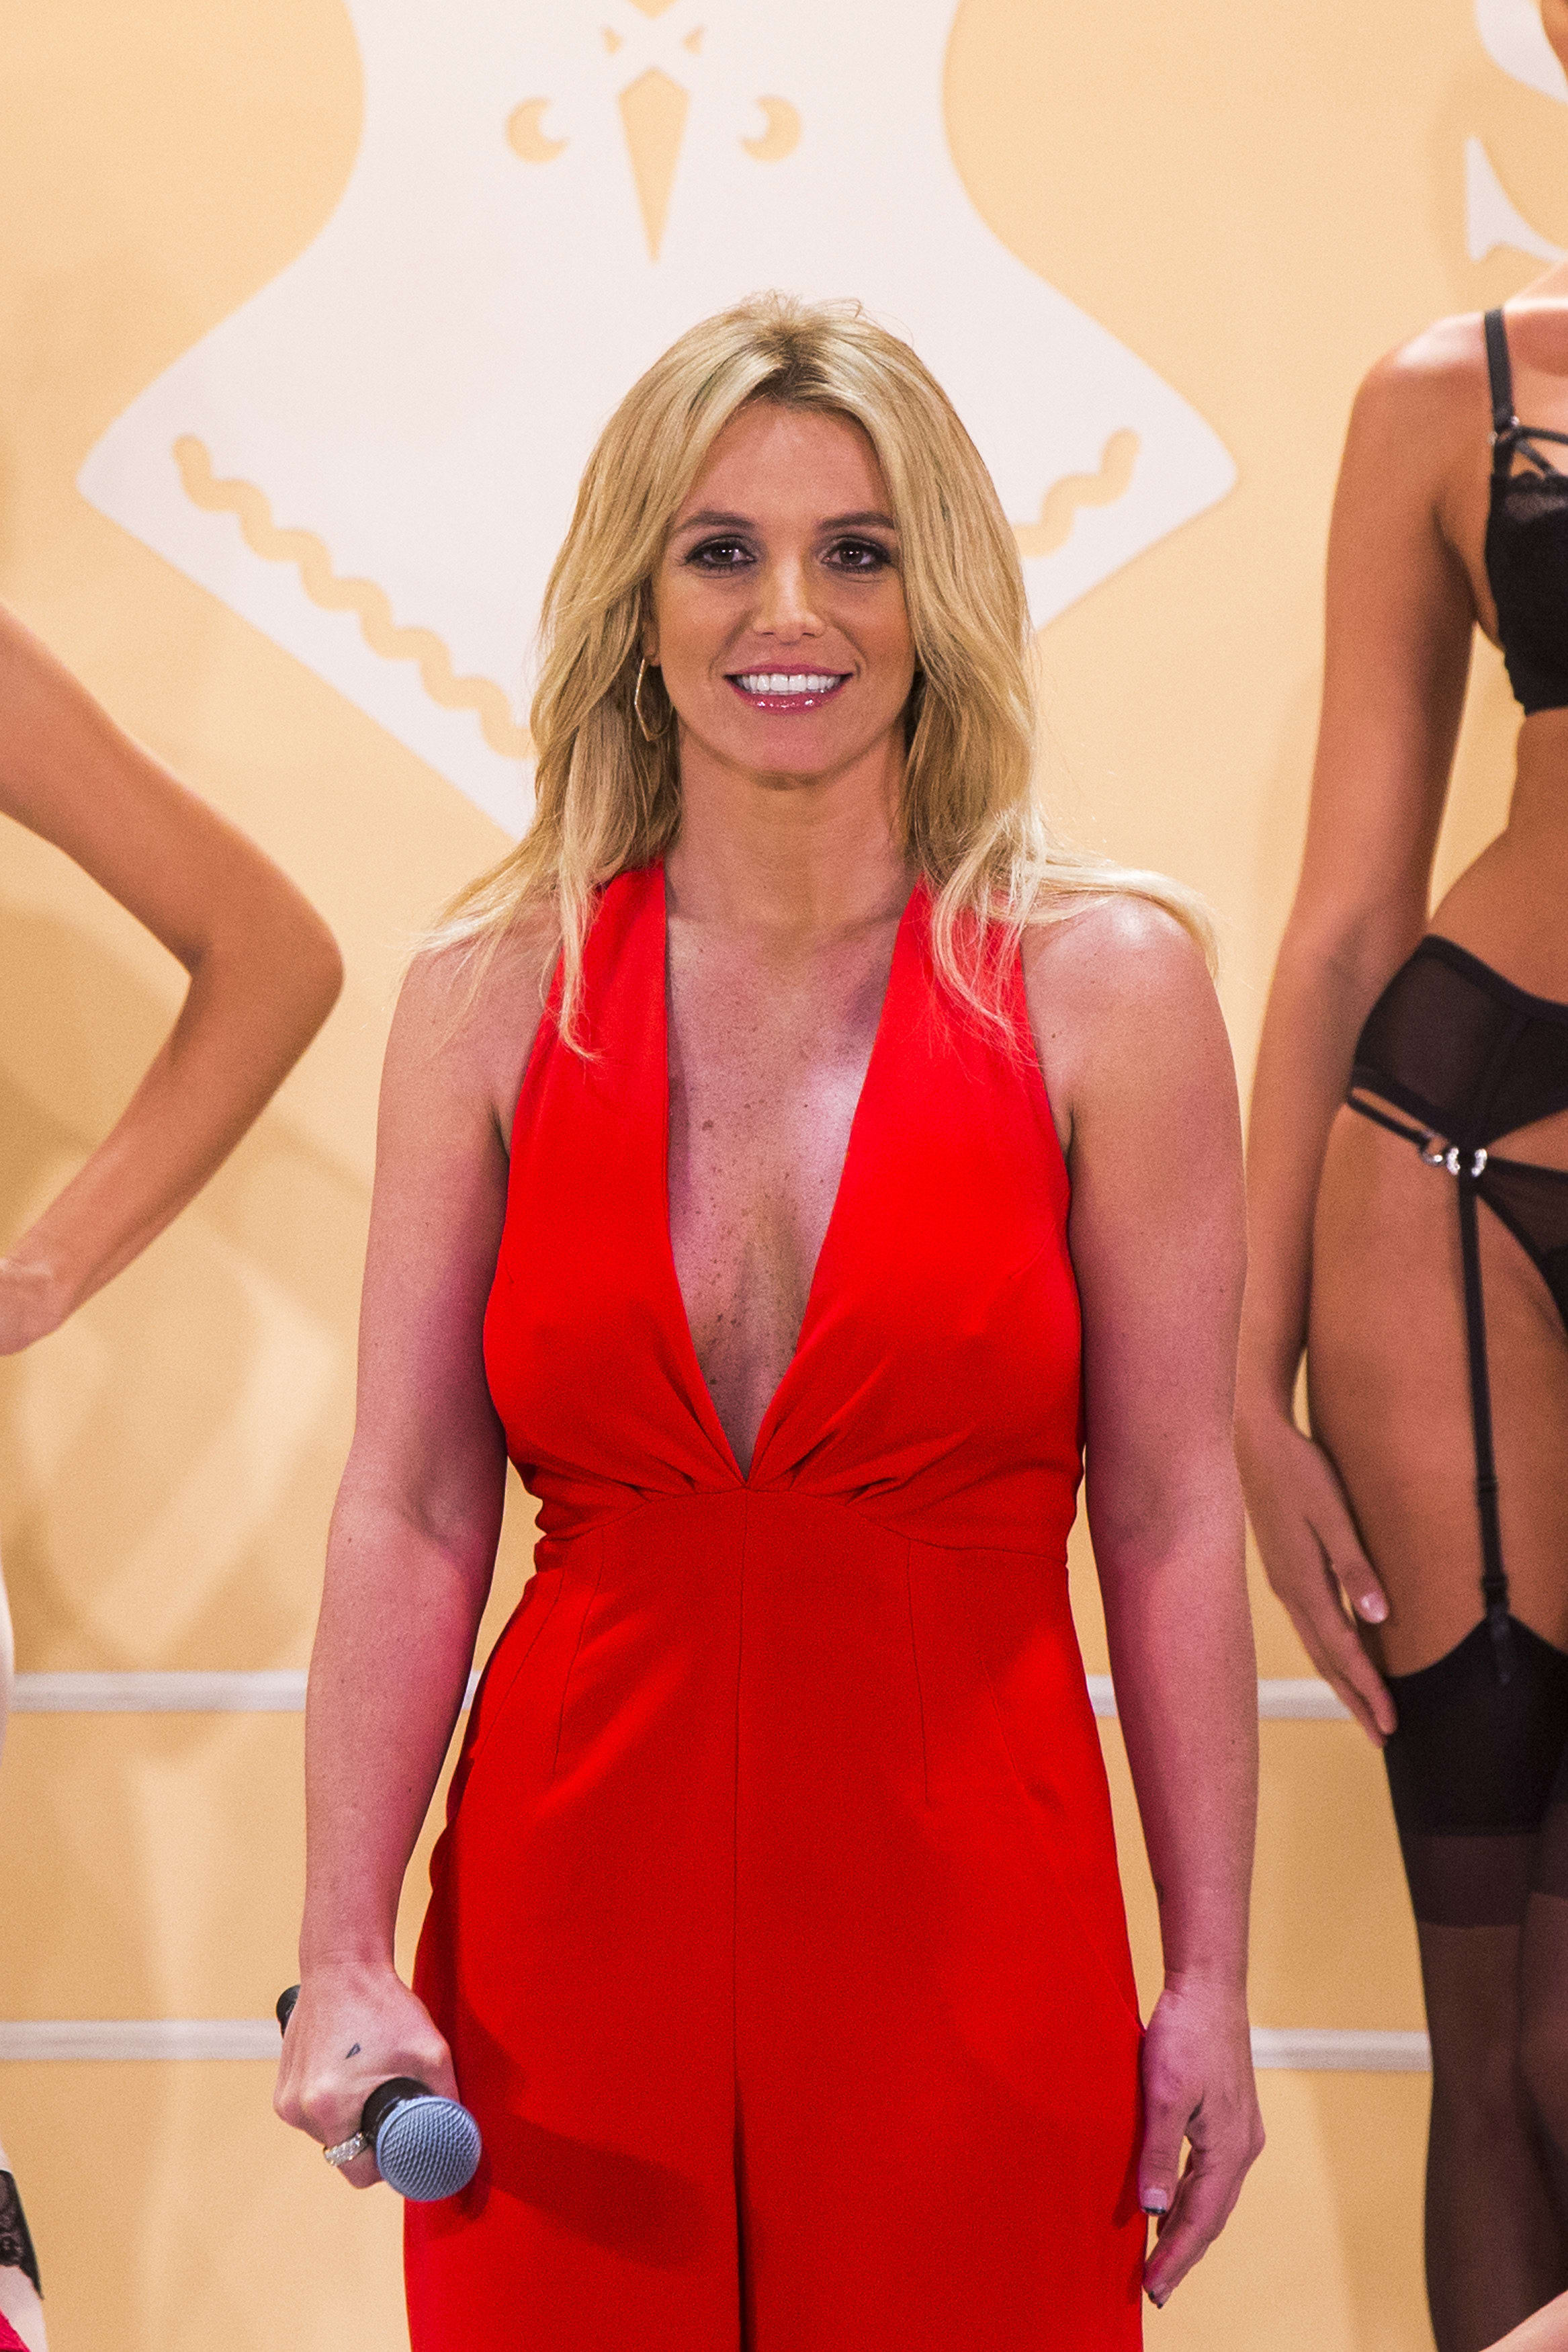 Britney standing on-stage